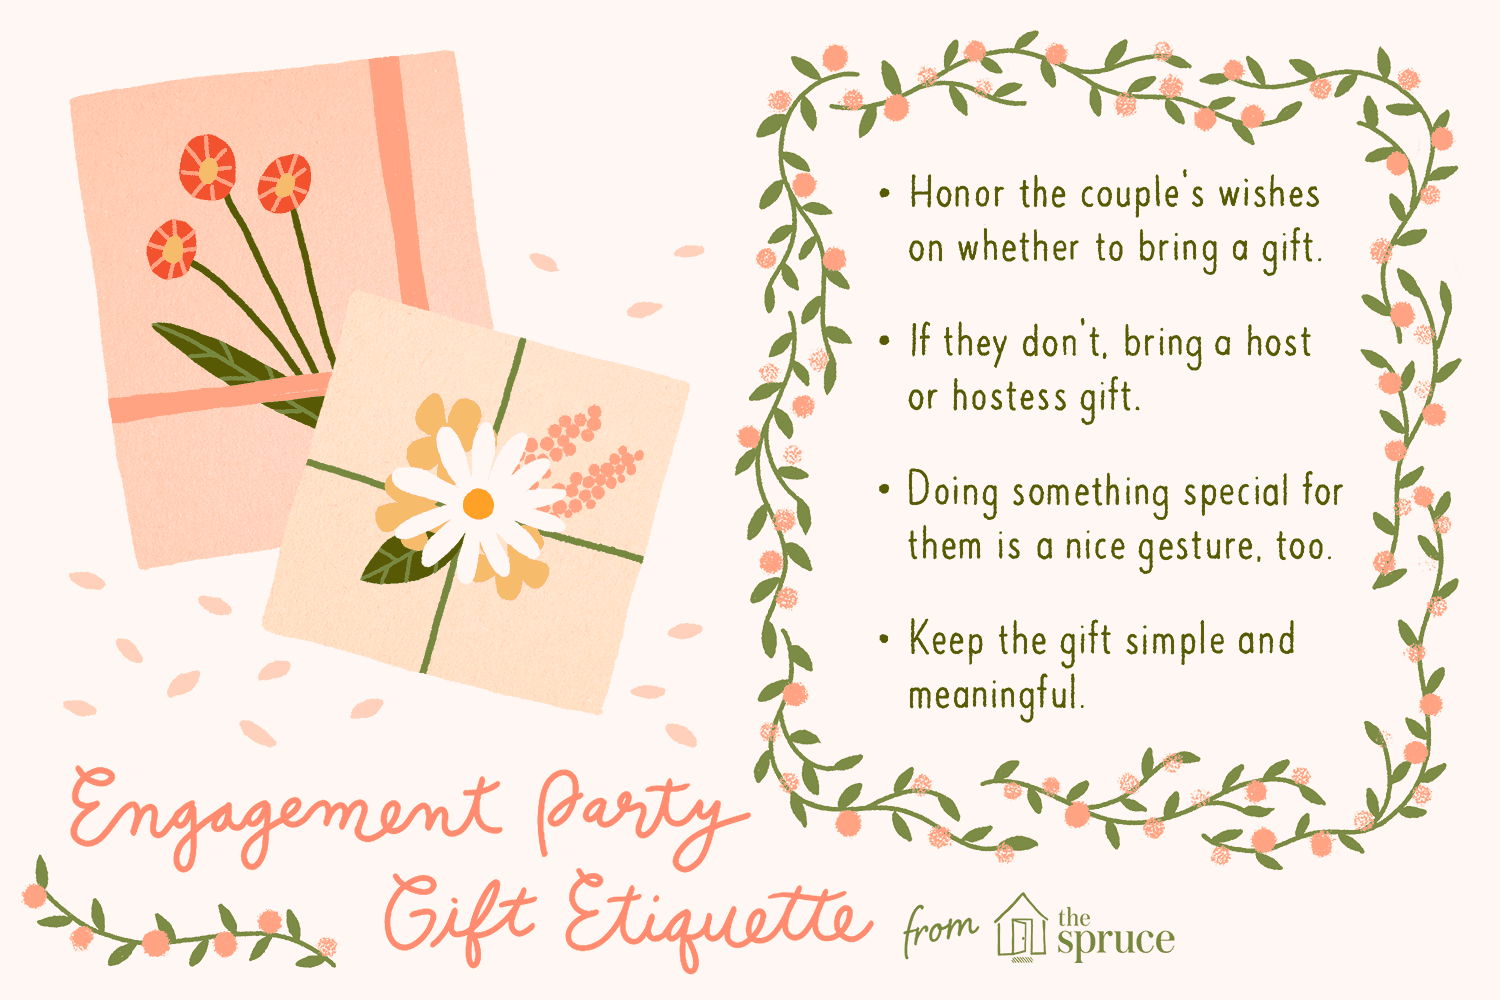 Should You Bring A Gift To An Engagement Party?